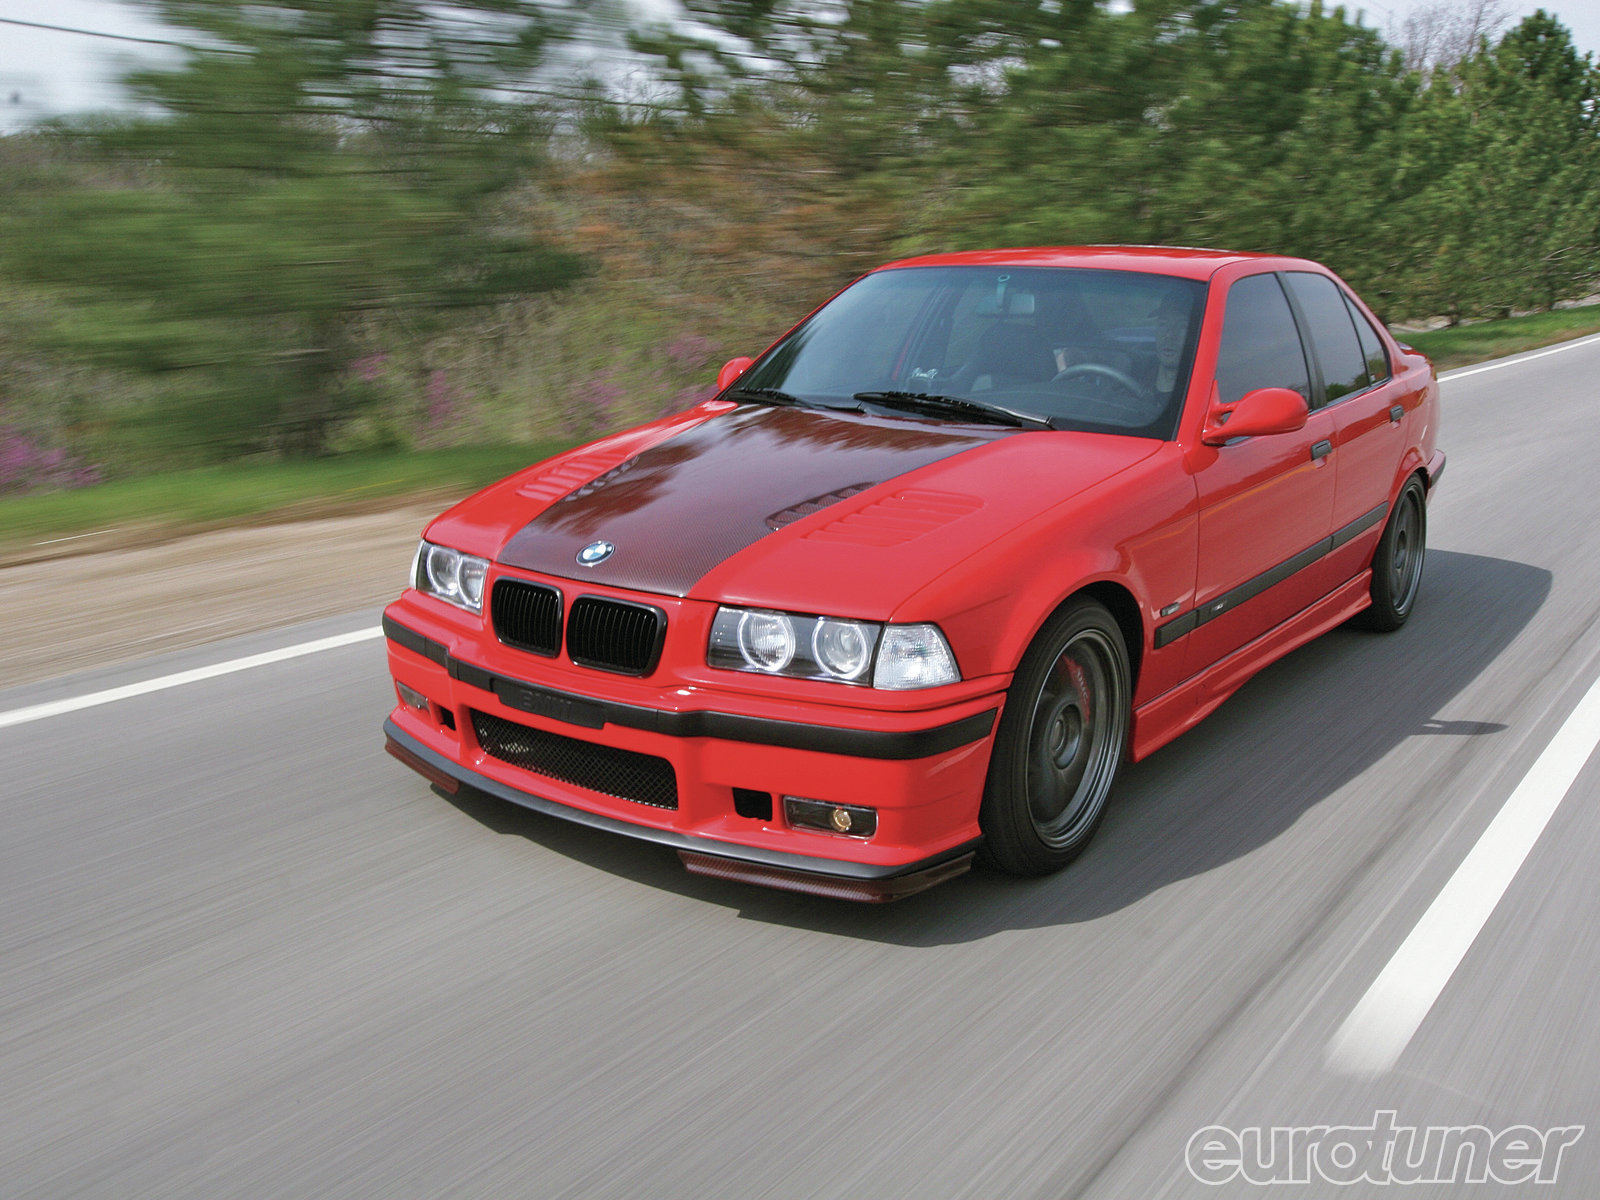 1997 Bmw M3 Mission Complete Project E36 M3 Eurotuner Magazine